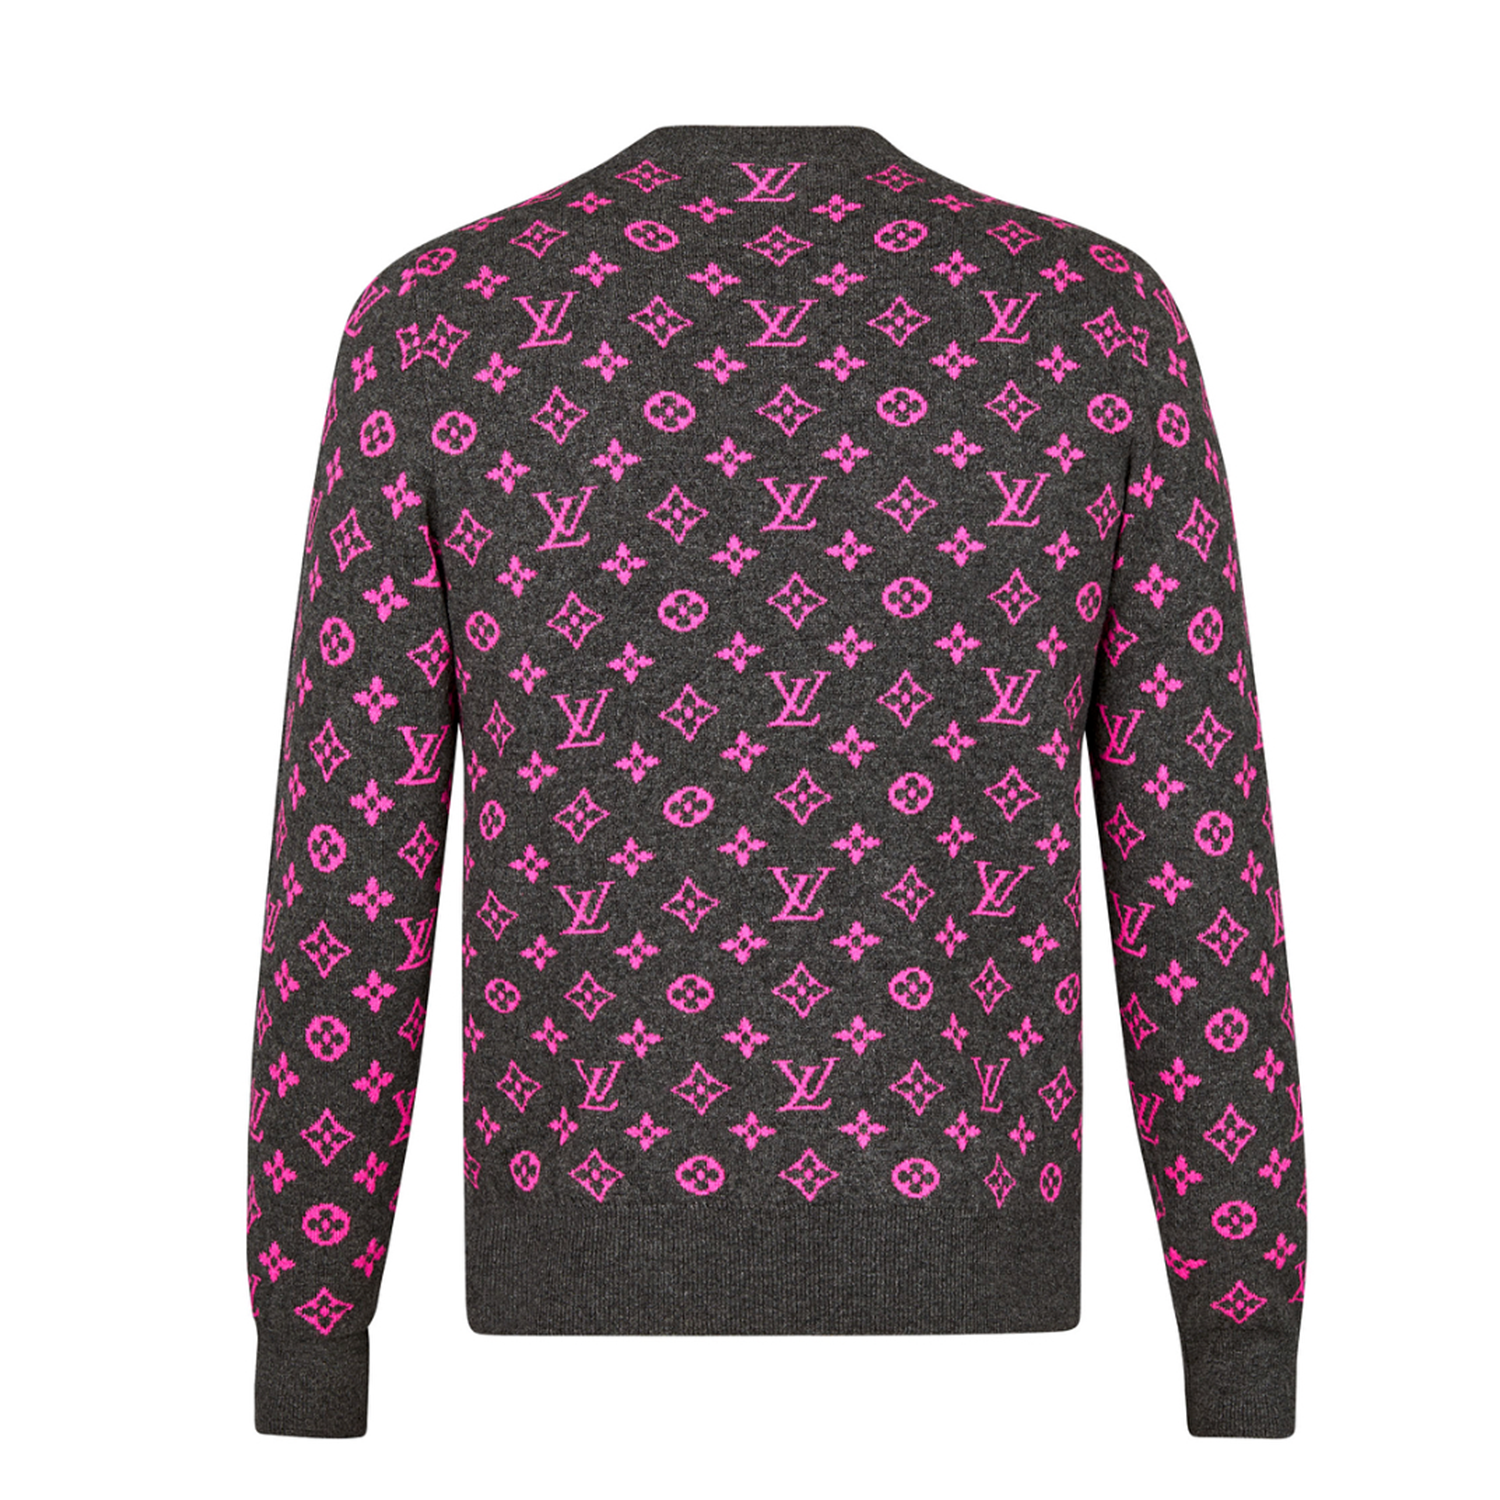 NEON MONOGRAM BACK SWEATER - €850 $12201A46XXNEON purple